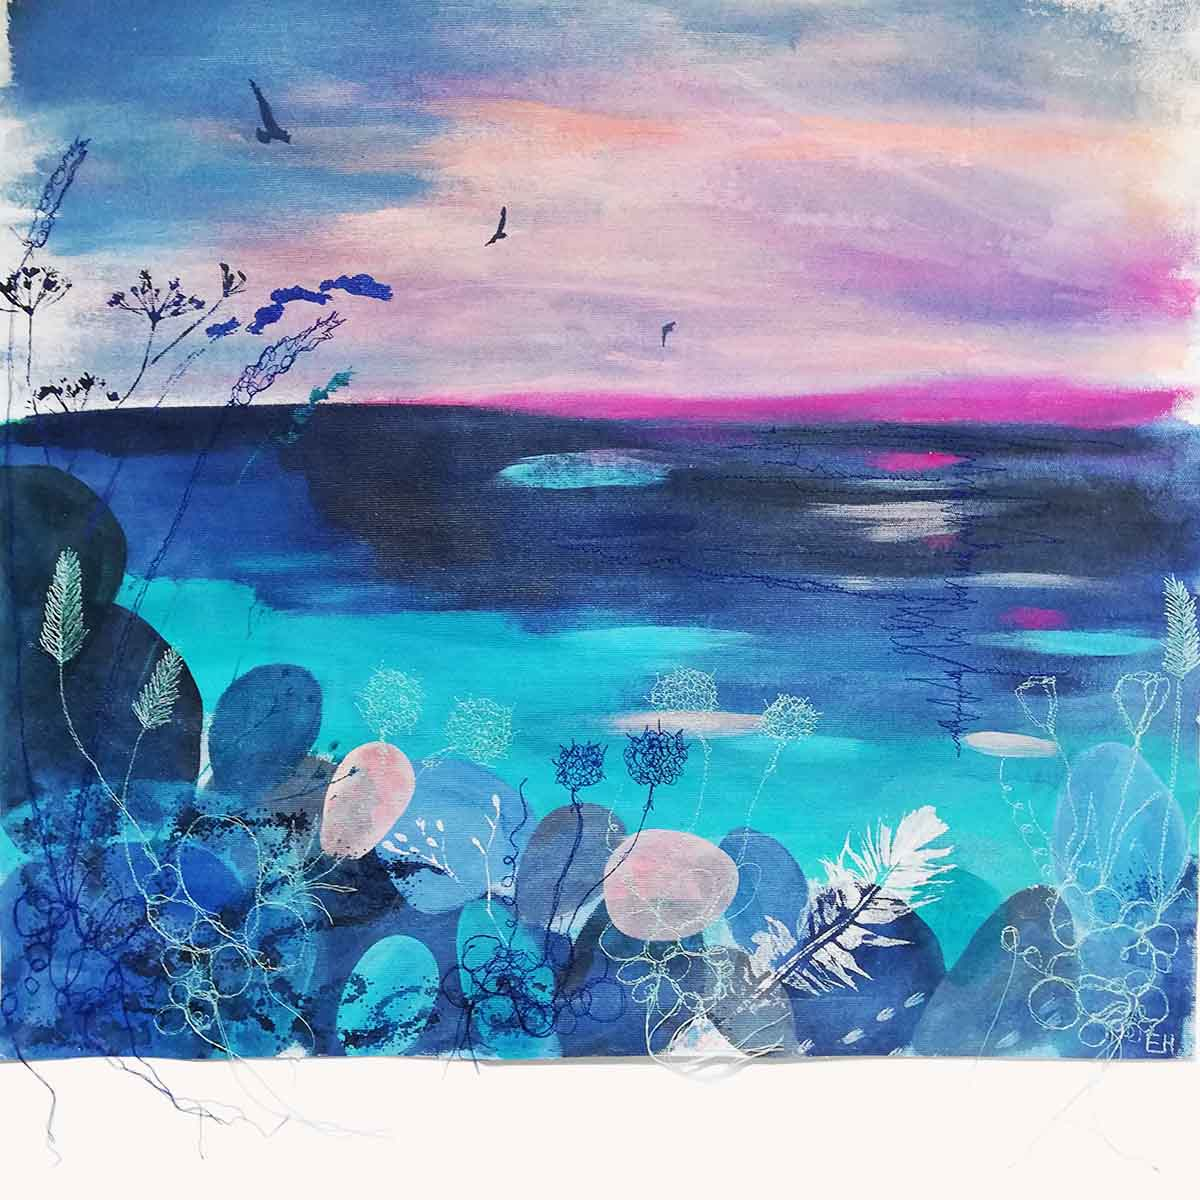 Calm Original painting by Artist Ellie Hipkin